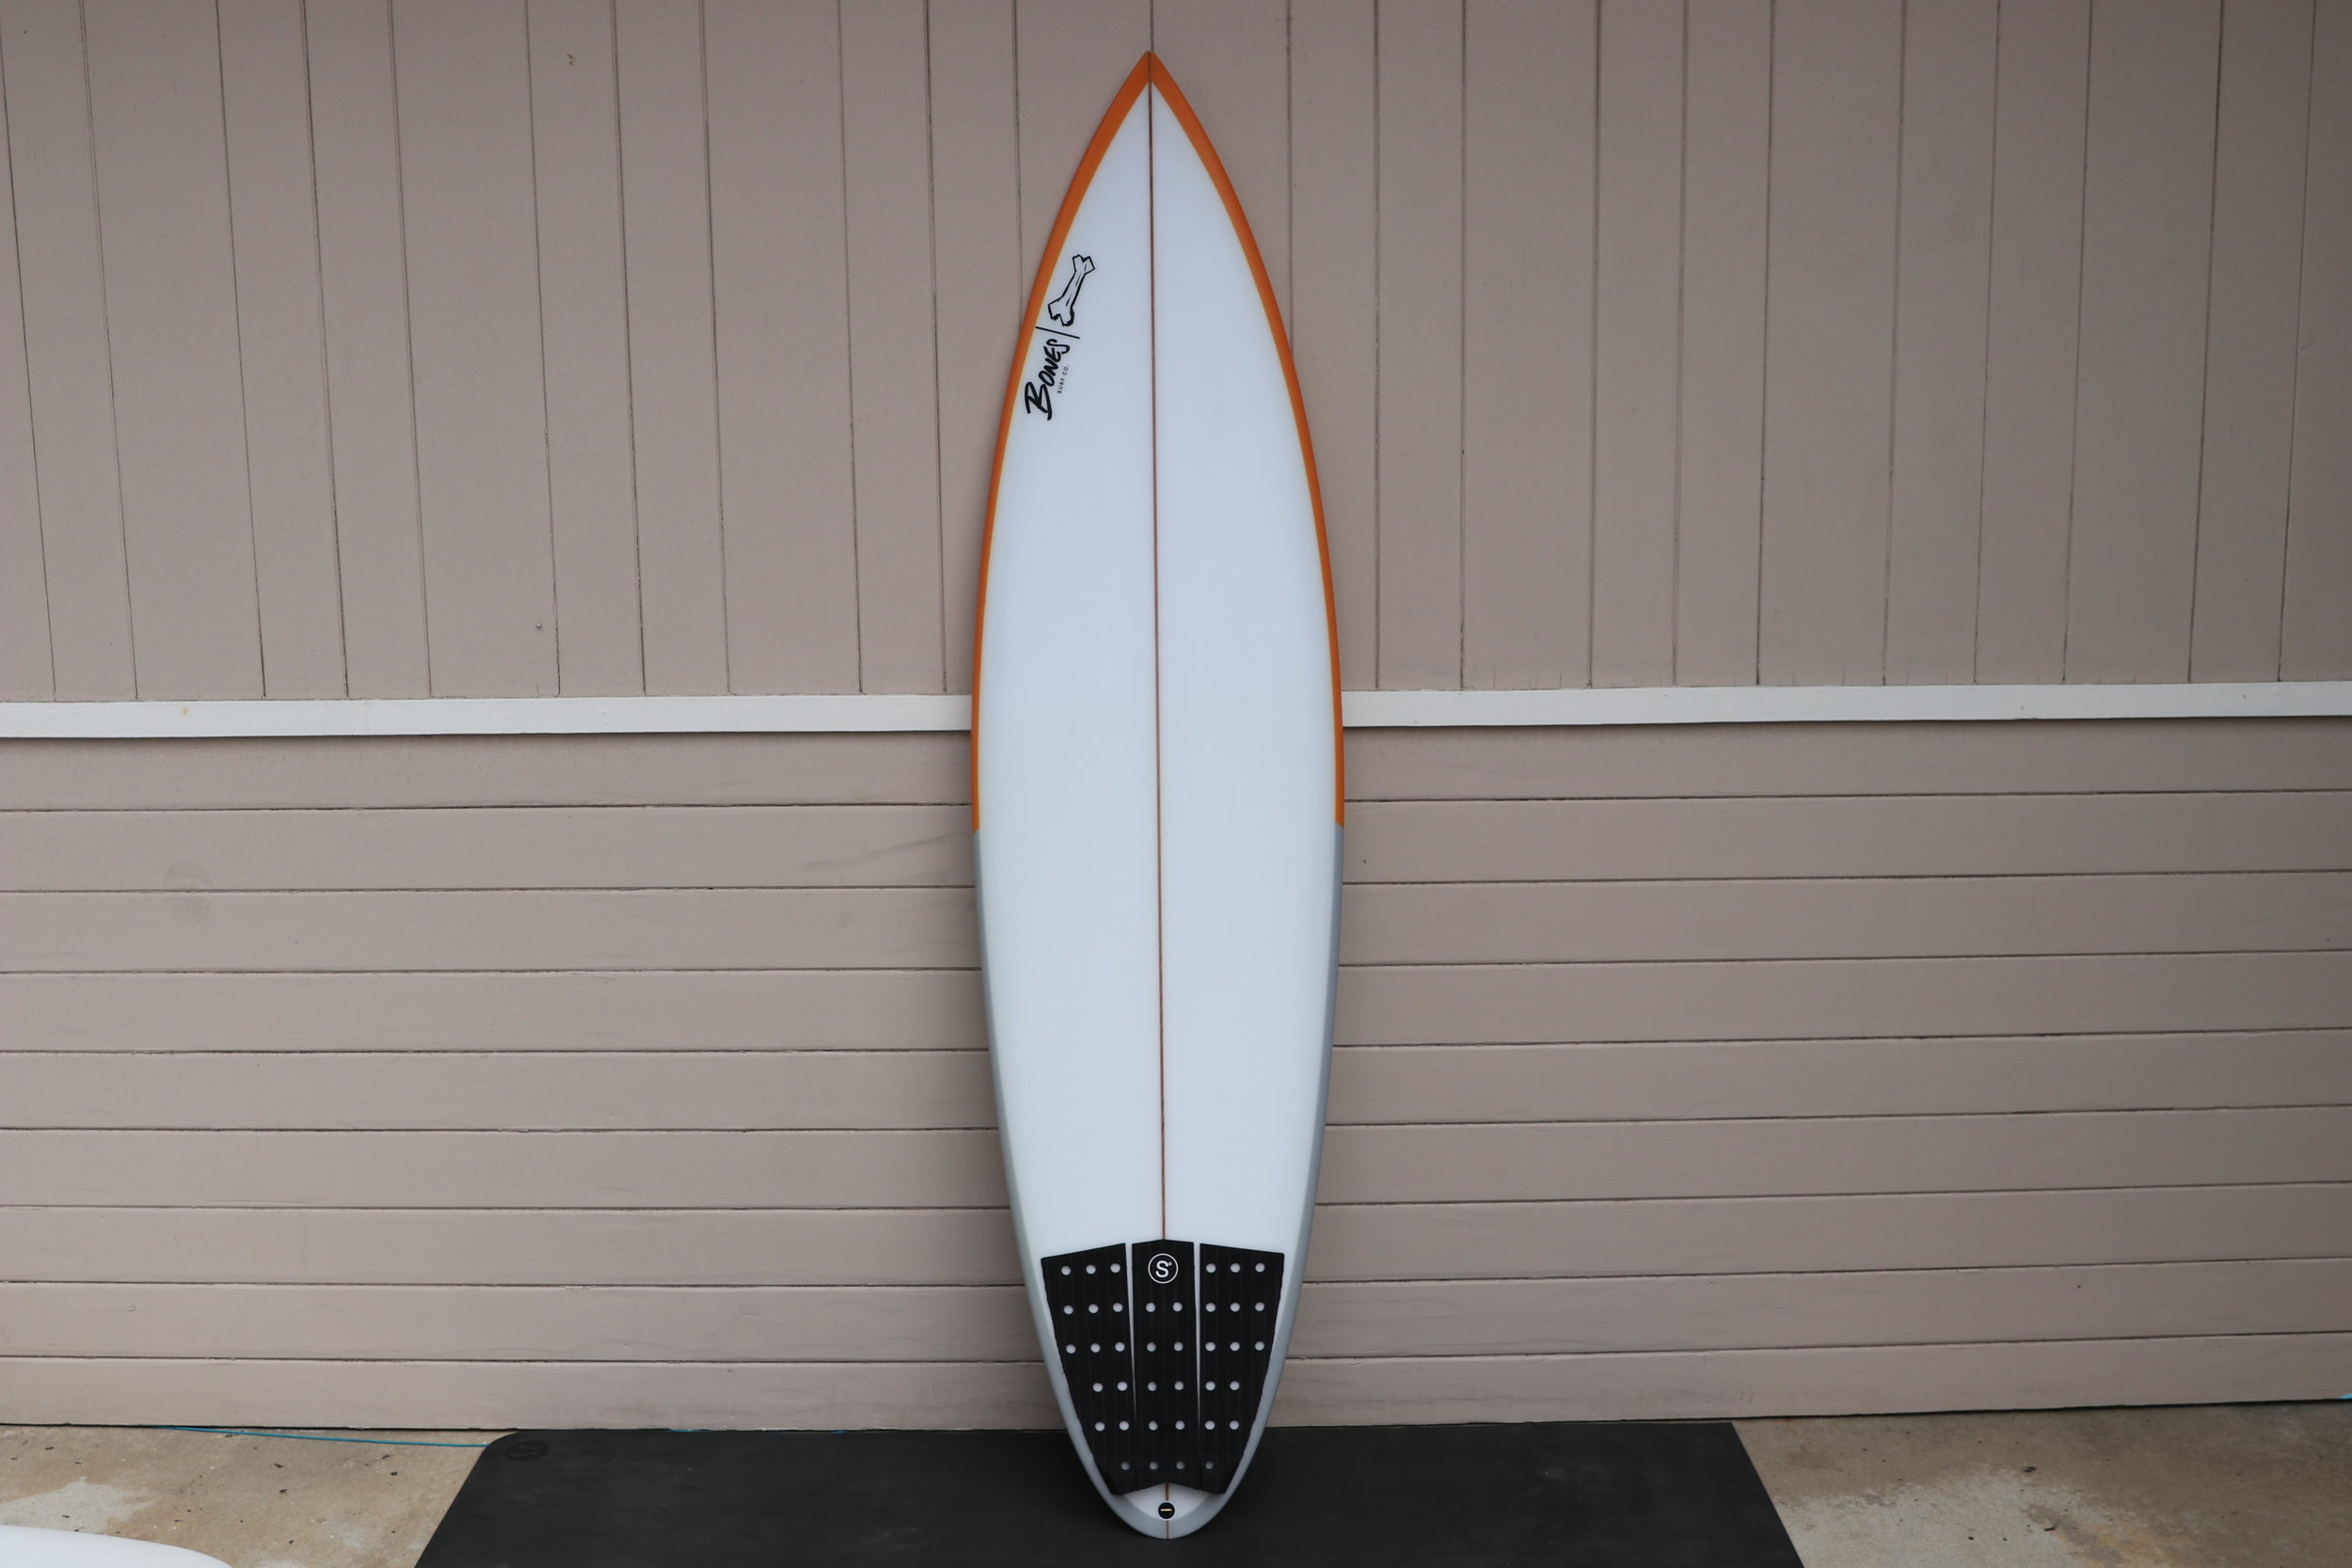 Beer Chug  6'6 x 19.75 x 2.65  This is the first Beer Chug I have made. There has been a lot of research and thought put behind this model. The wide point is further up and there is a good deal of foam in the front of the board for paddle power. The tail has a bit more width than your traditional step up pin tail. I wanted it to be good in the barrel, hold and be predictable. But I also wanted it to work well in big point breaks that might be more wave face with more carves and cut backs than barrel shooting. I put 5 fin boxes in back. This board is glassed heavy, has denser foam, and is definitely for big waves. I recon Jazz will surf this in well overhead barrels up to triple overhead point breaks. If anything is going to get him into trouble on this trip, it is this board.